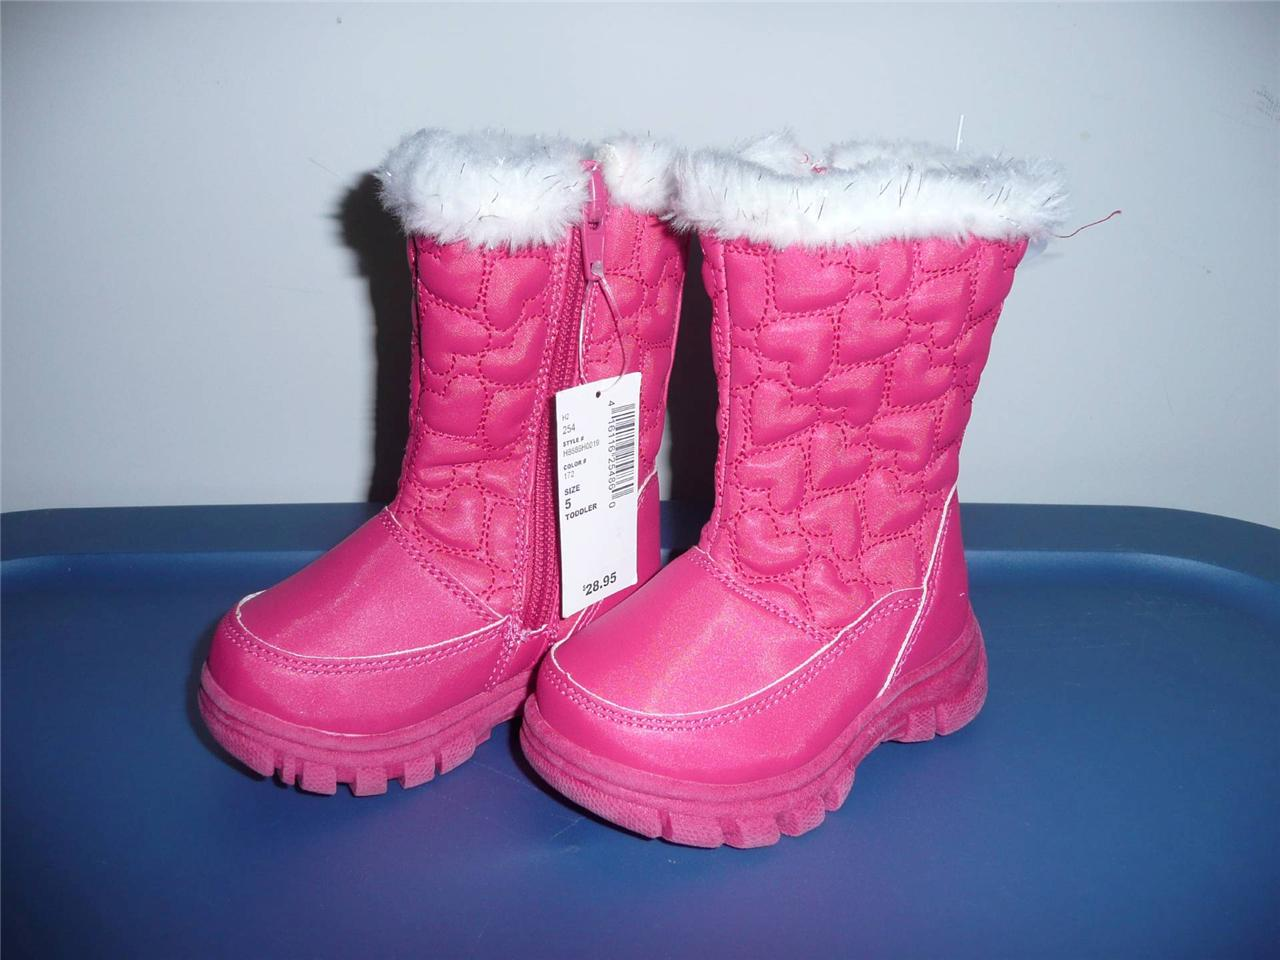 Bogs Durham Kids/Toddler Waterproof Snow Boot Boys Girls. Sold by PairMySole. $ Toughskins Toddler Boys' Snow Pants. Sold by Sears. $ Laura Ashley Toddler Girls' Mid-Calf Boot - Black. Sold by Sears. $ $ Disney Disguise Disney Princess Snow White Classic Toddler Costume.